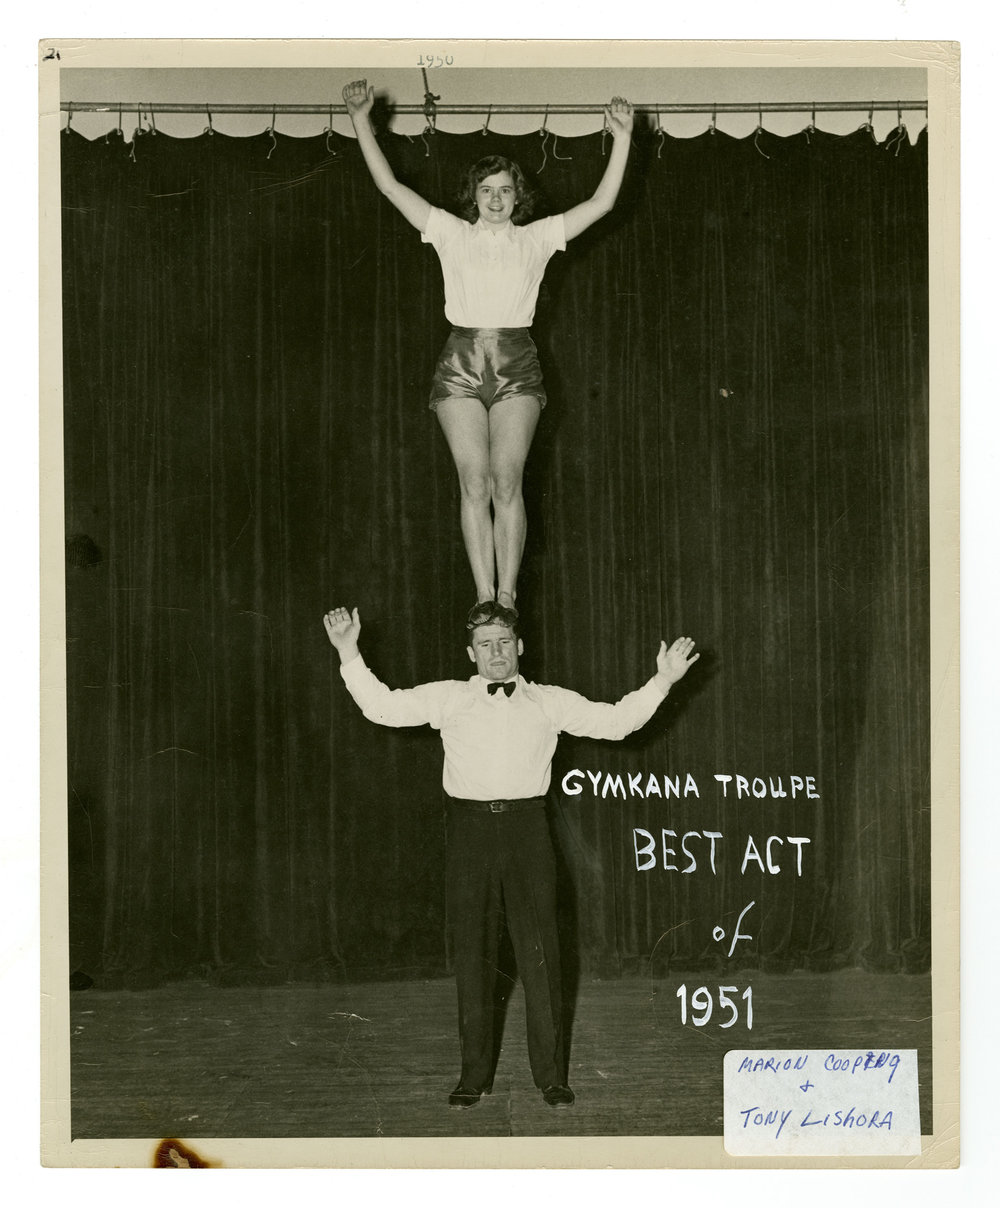 1951 - Anthony and Cleopatra (Mixed Doubles Balancing)